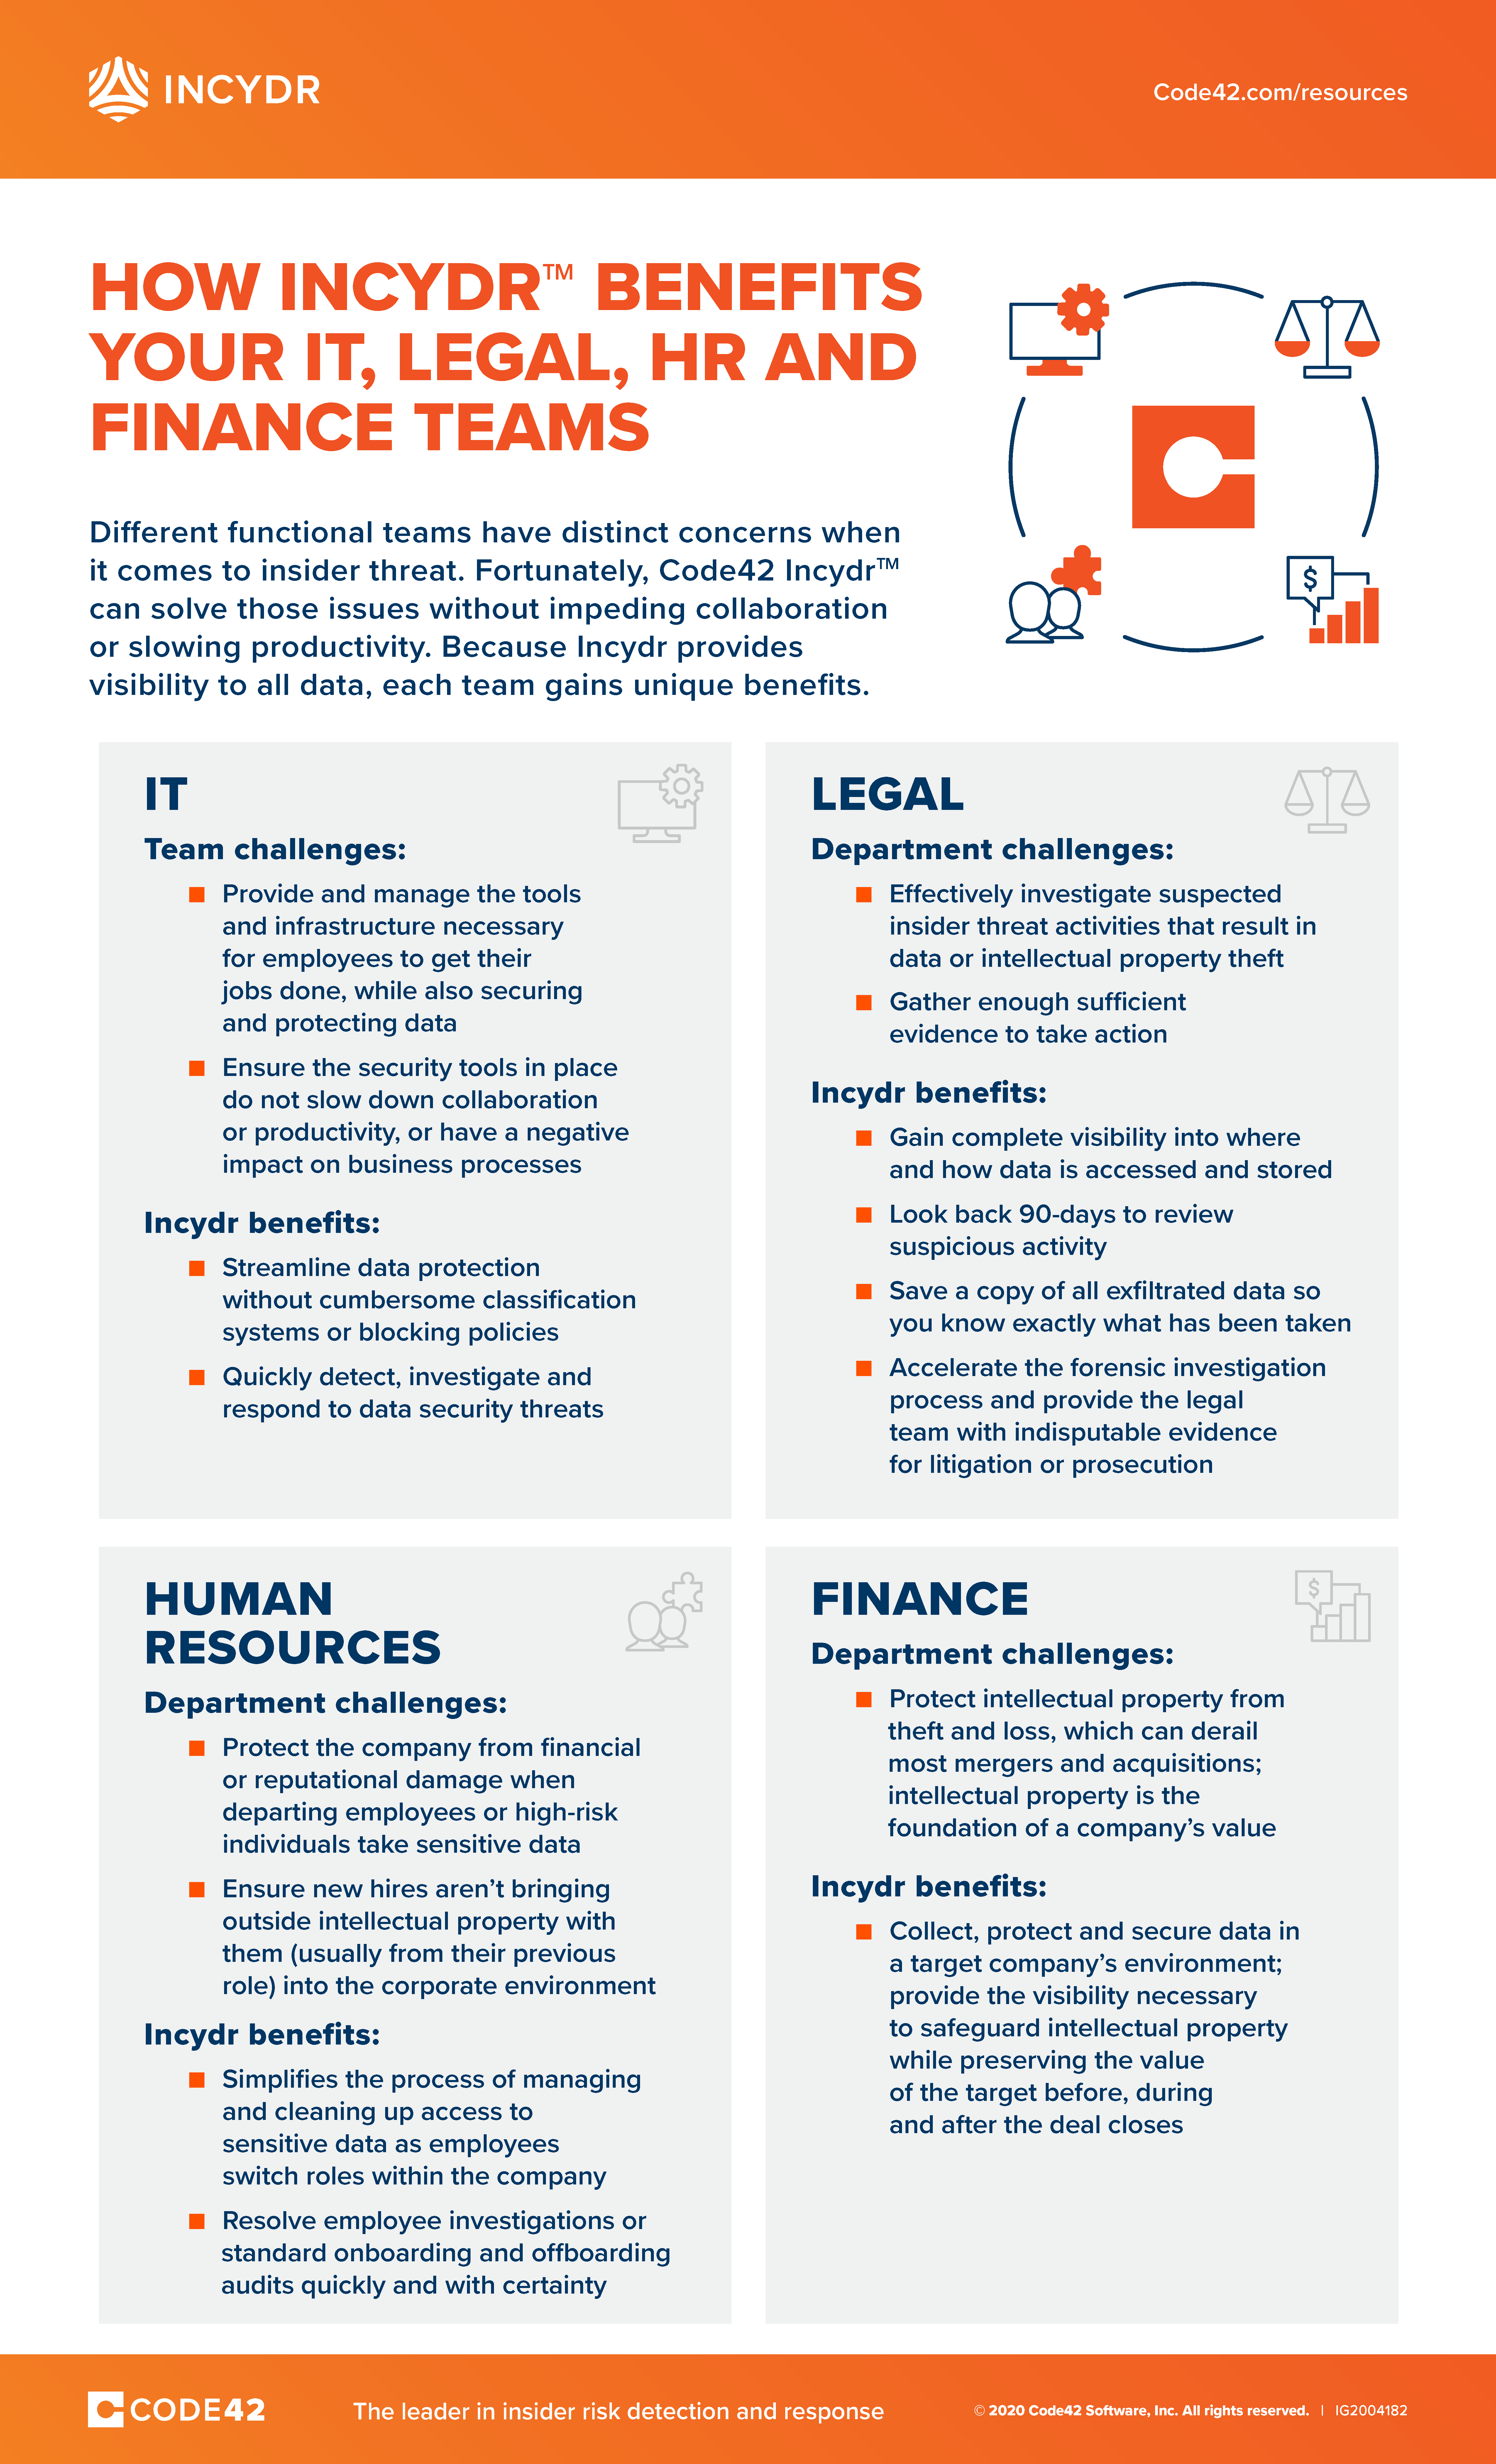 Infographic explaining how Code42 Incydr can benefit IT, legal, HR and finance teams.